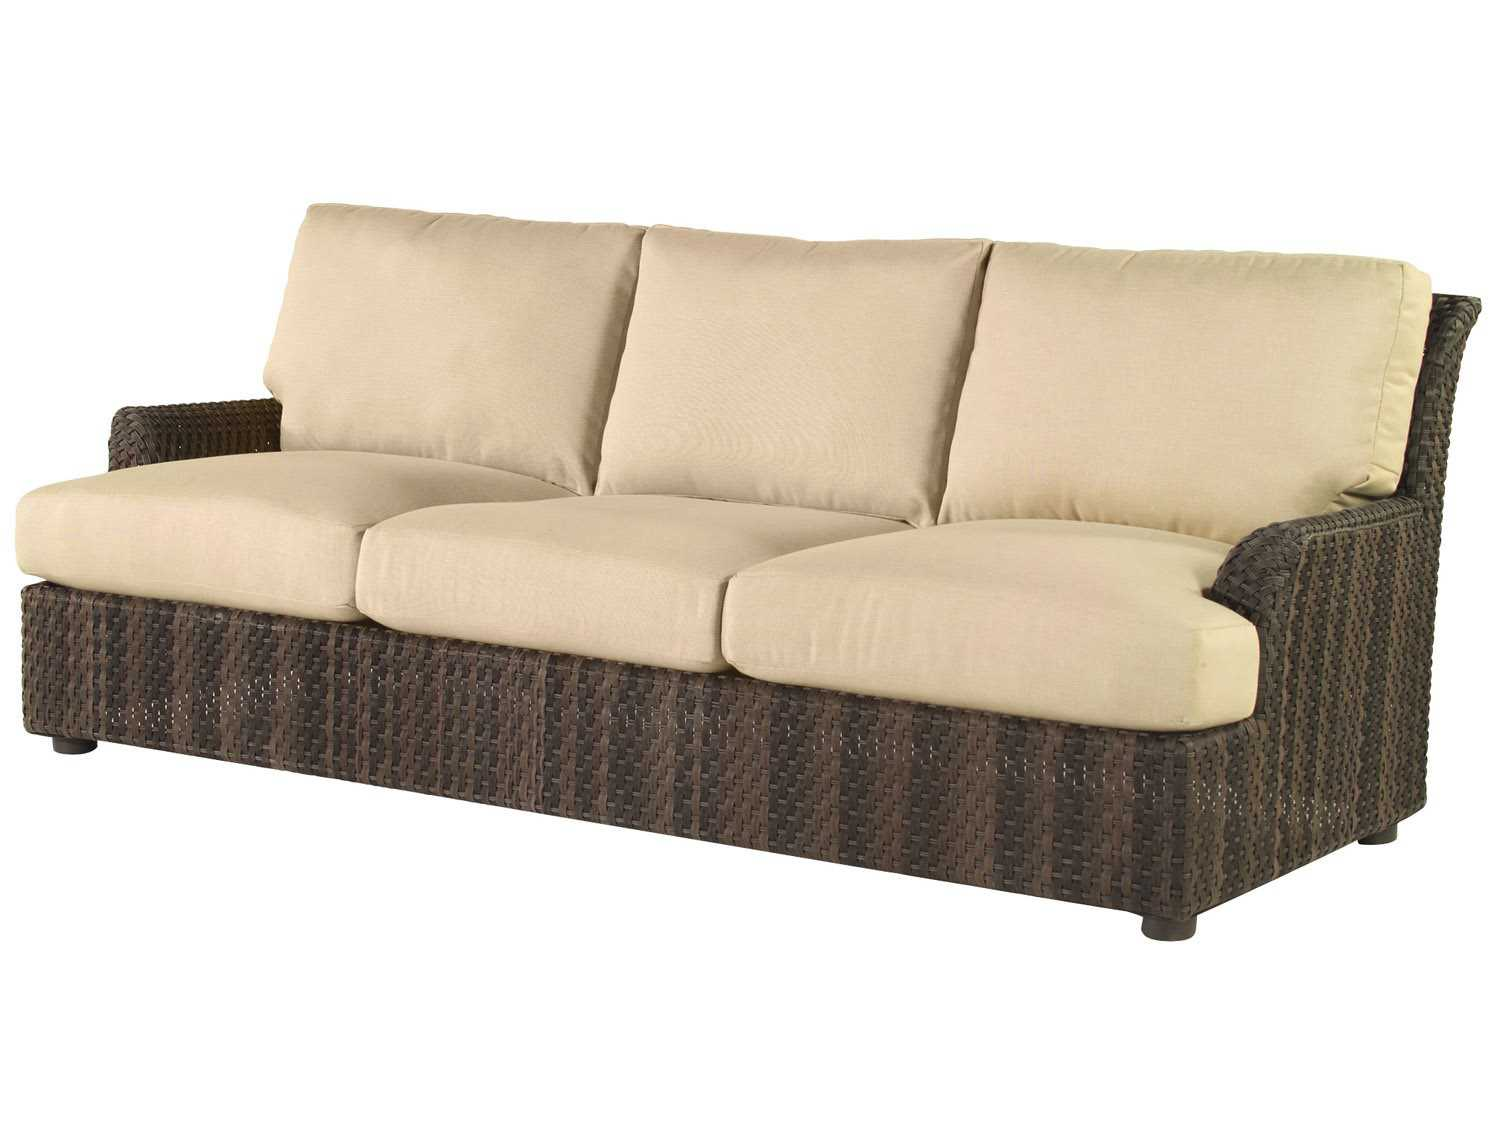 replacement cushions for sleeper sofa living room images whitecraft aruba cu530031